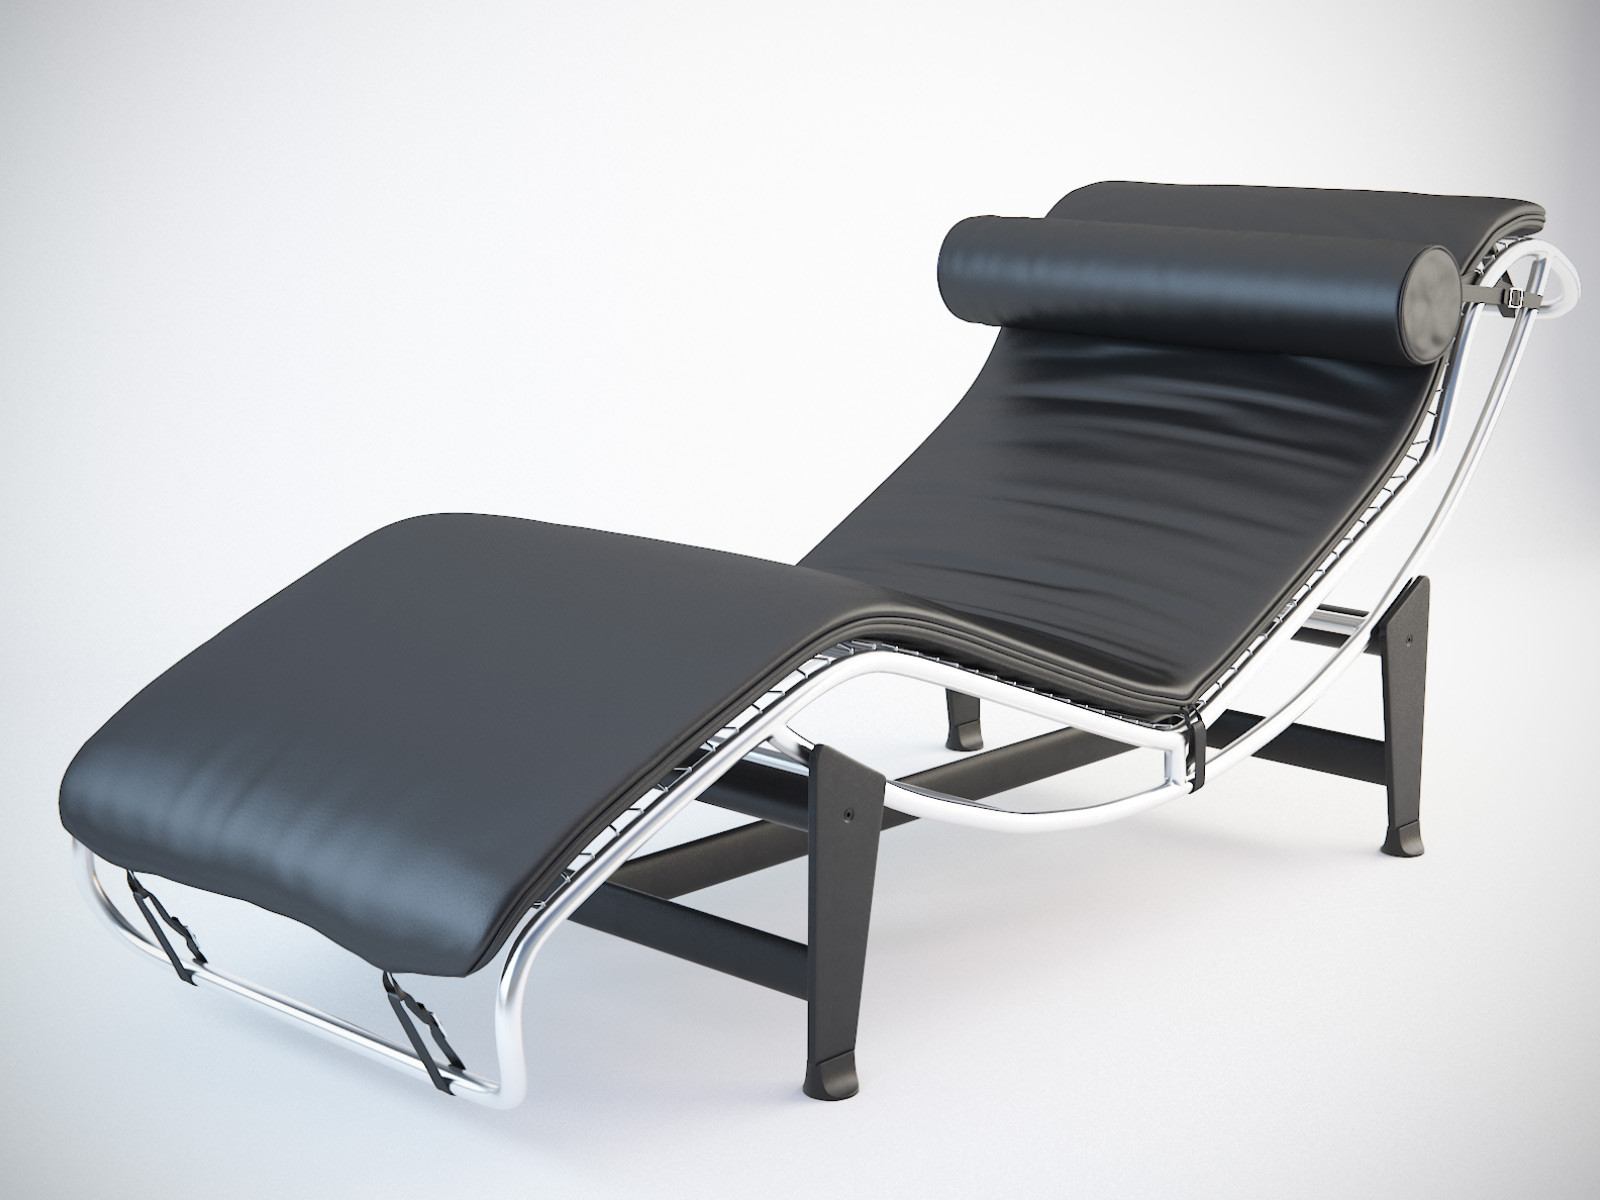 3d model of lc4 corbusier chaise for Chaise lounge corbusier